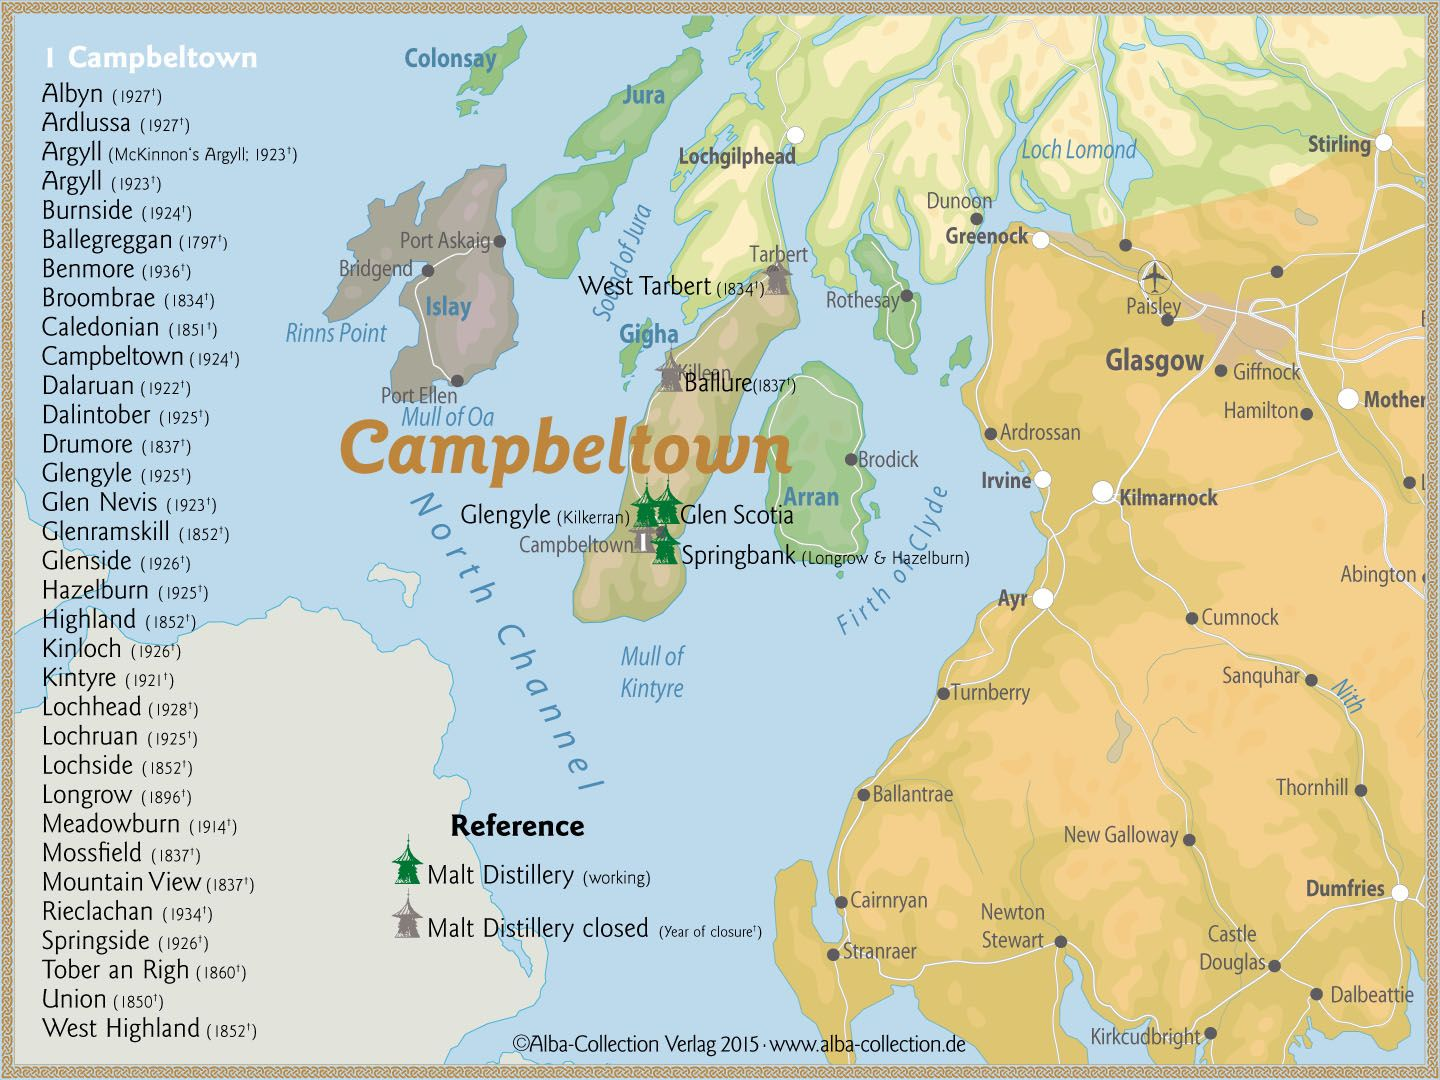 Campbeltown Scotland Map.Whisky Regions Of Scotland Chart 23 Region Campbeltown Malt